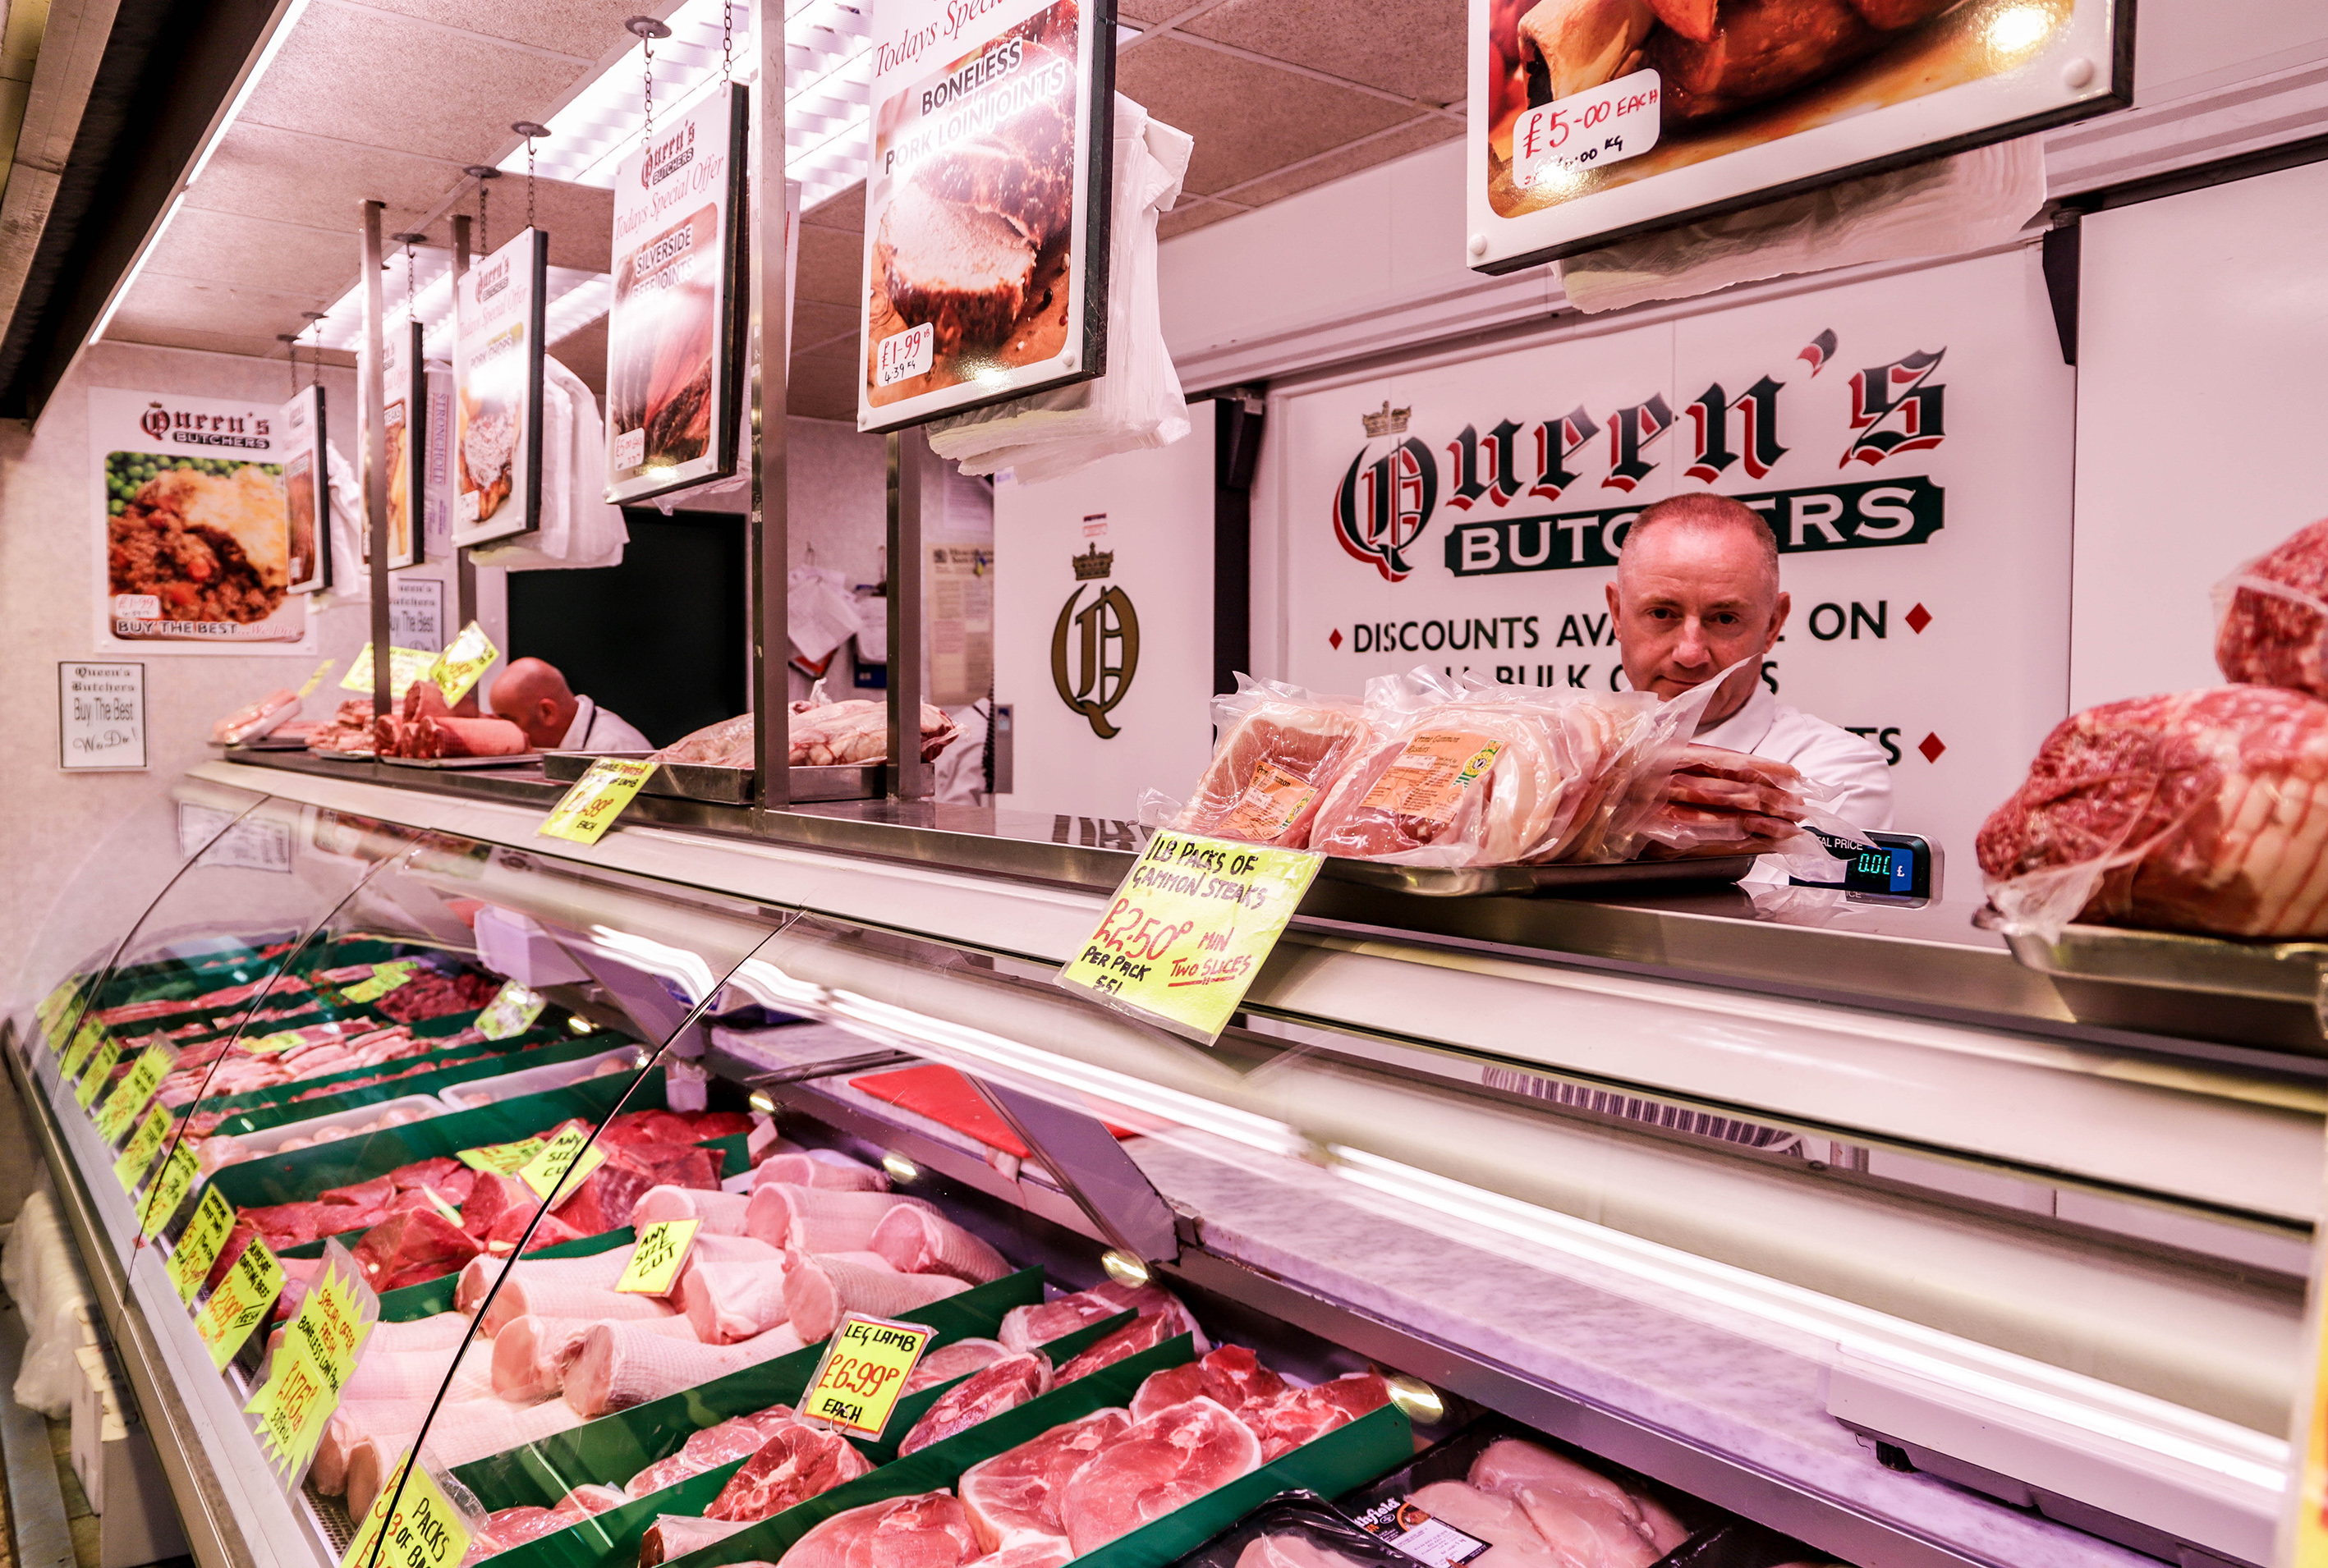 Queens butchers